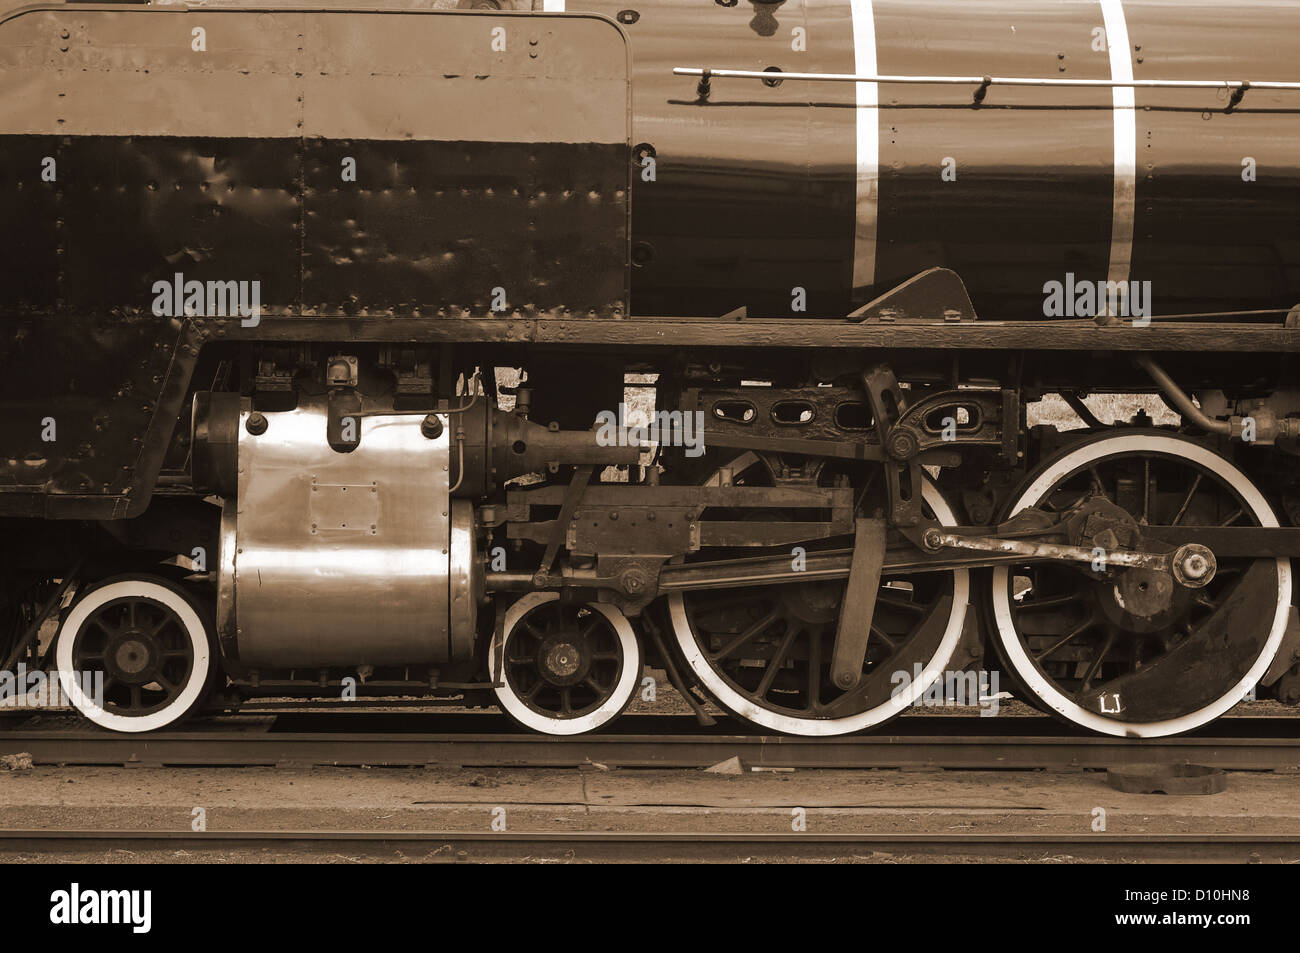 Steam train locomotive moving parts, gears and wheels in sepia - Stock Image